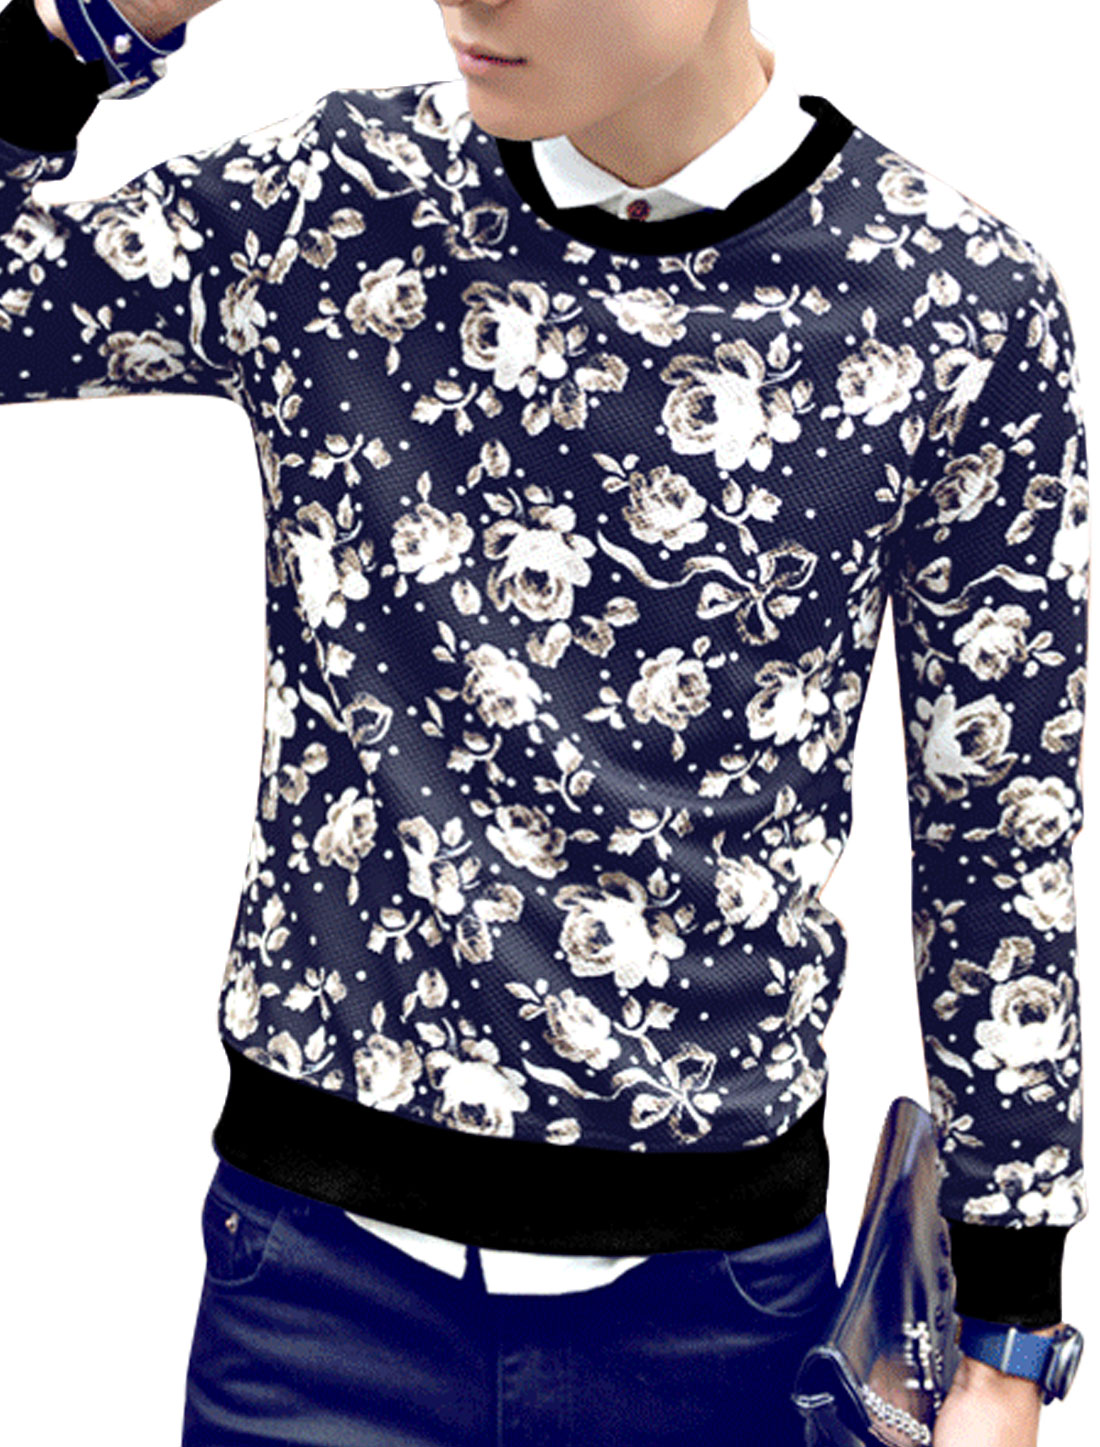 Men Round Neck Dots Flower Print Ribbed Trim Pullover Chic T-Shirt Navy Blue M